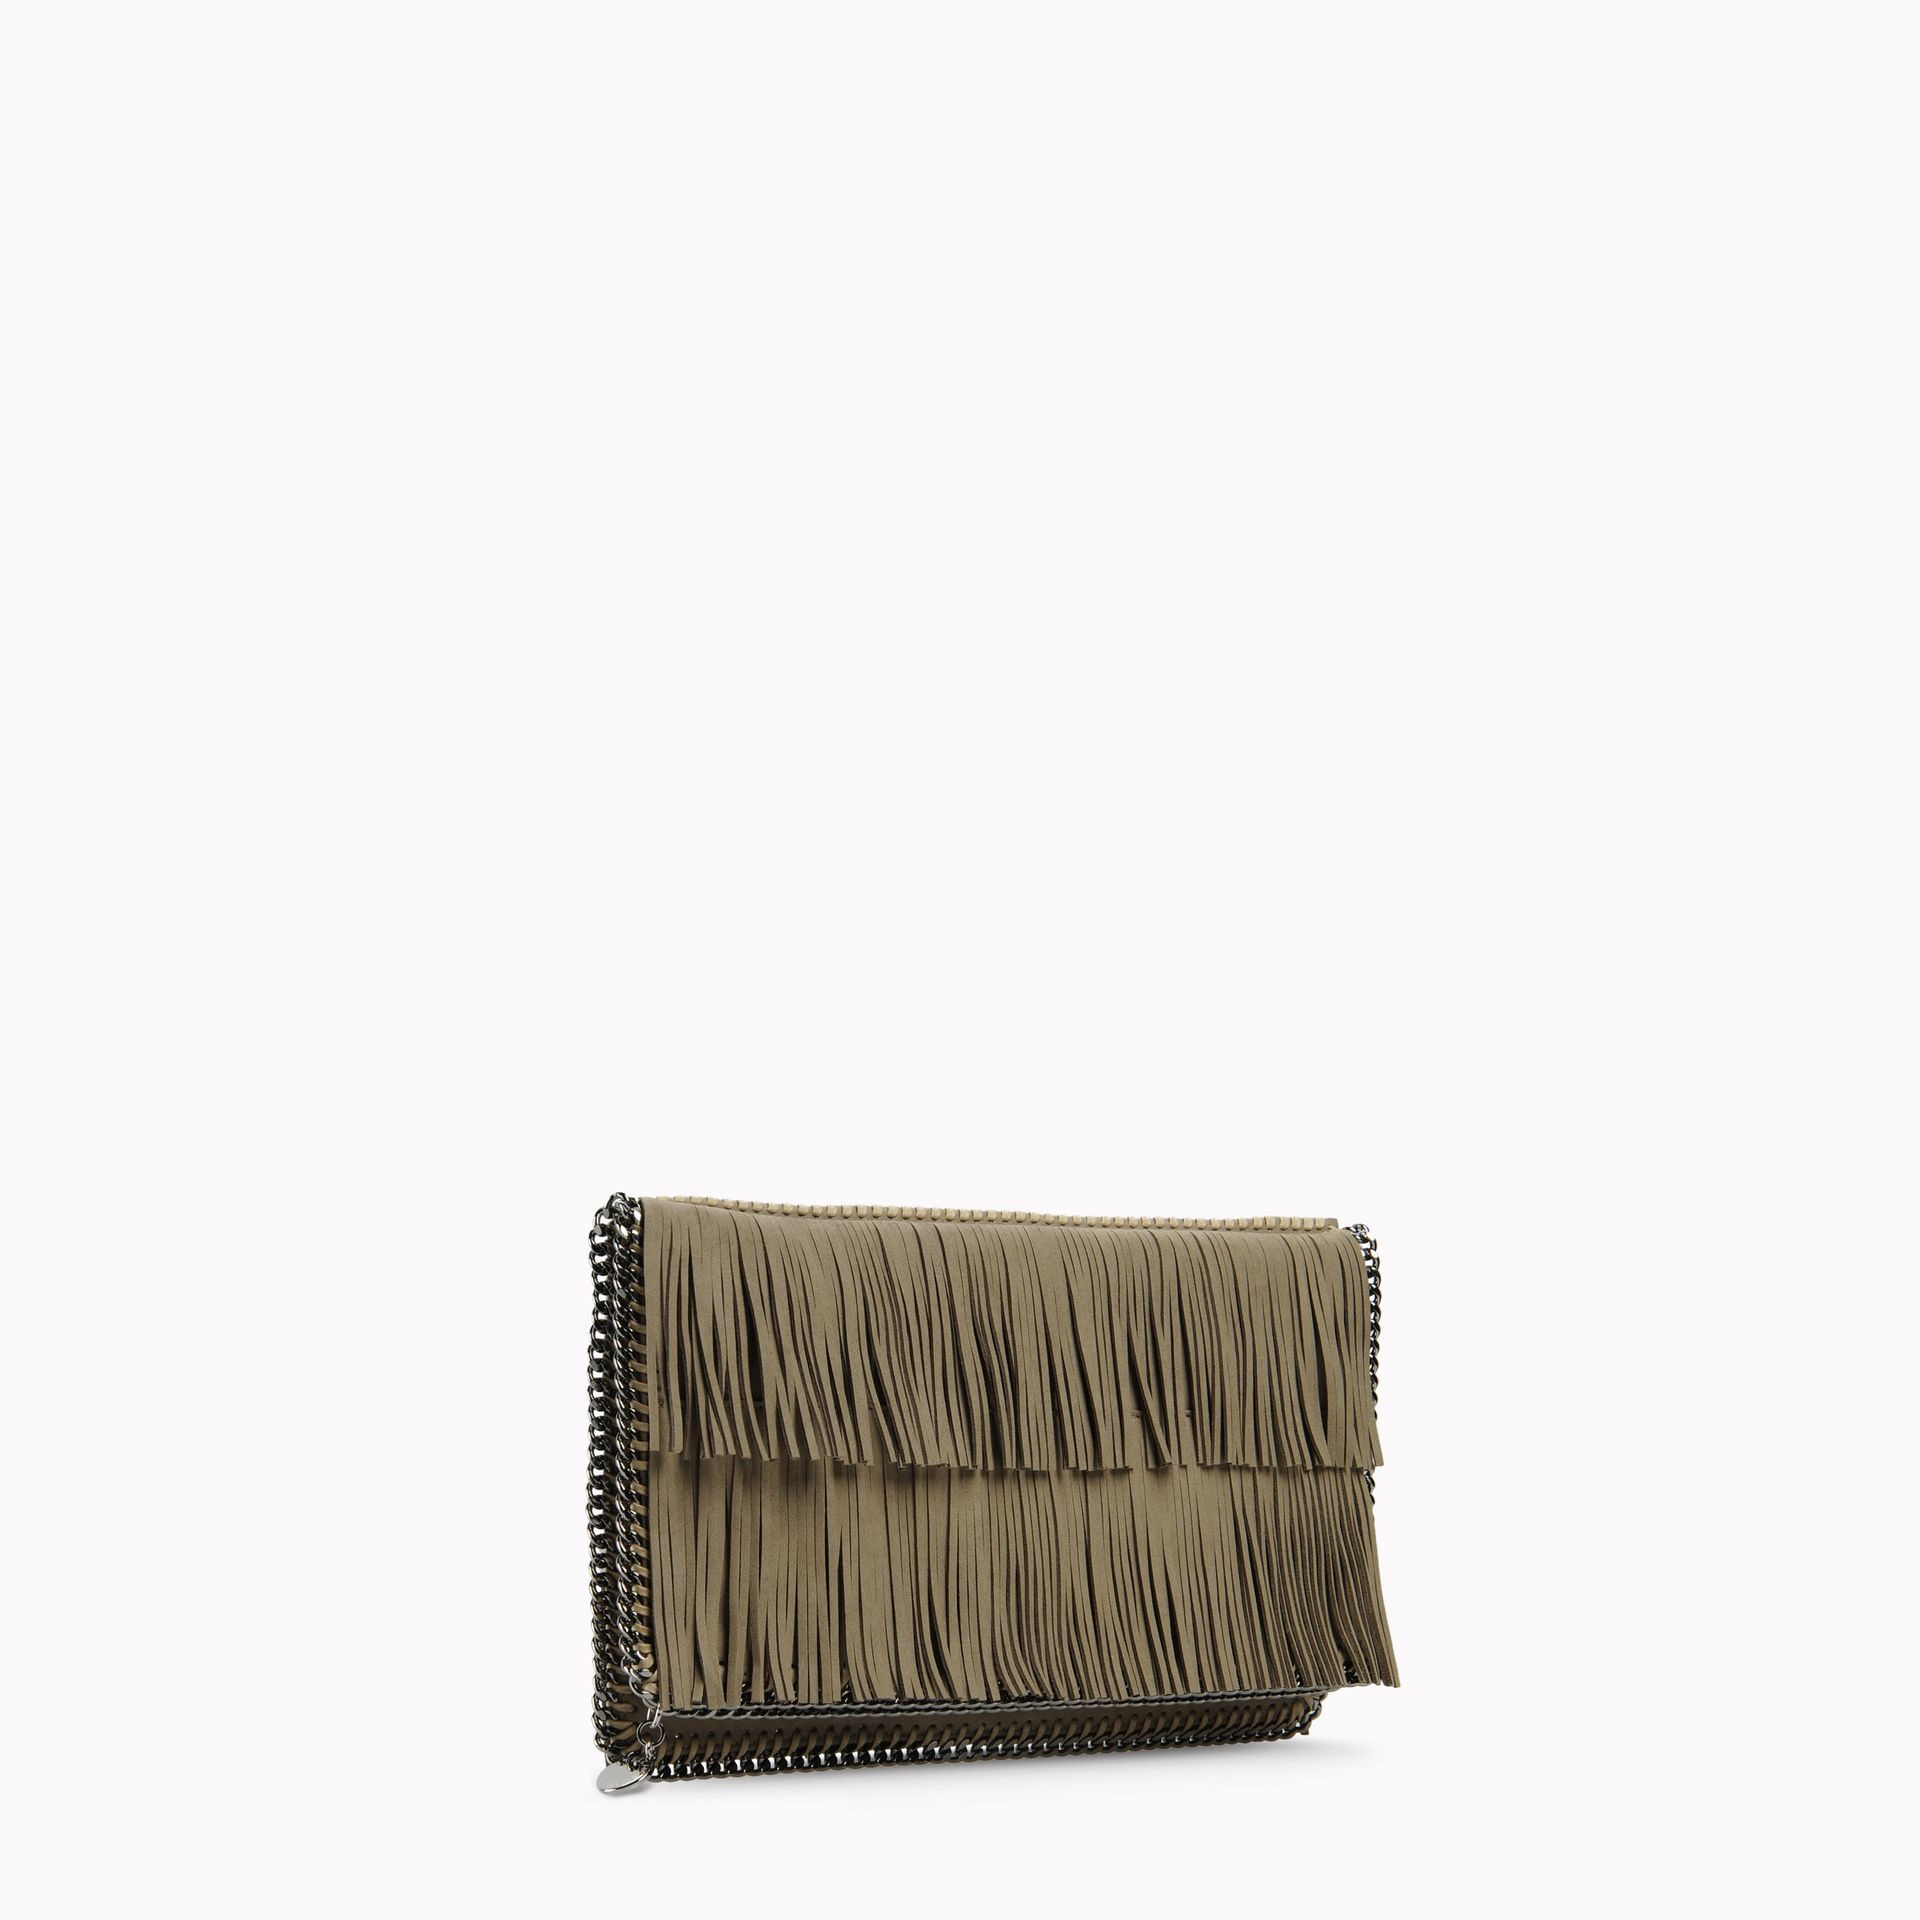 Women's STELLA McCARTNEY Clutch bag - Bags - Shop on the Official Online Store